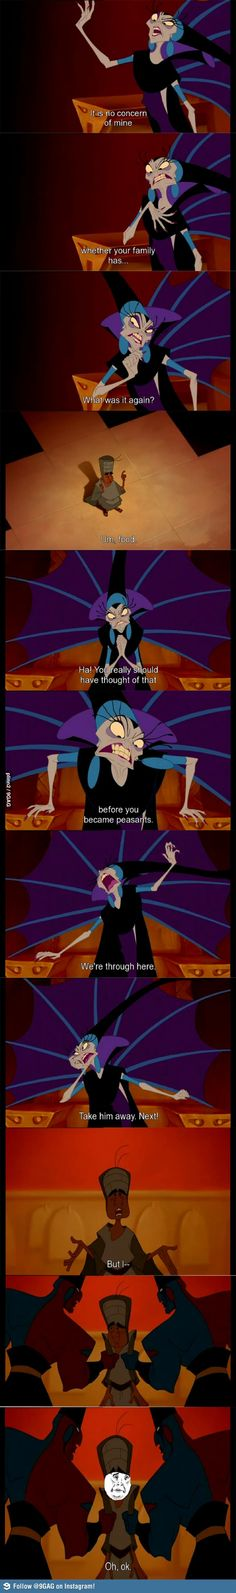 Yzma: It is no concern of mine whether or not your family has... what was it again? Peasant: Umm... food?  Yzma: Ha! You really should have thought of that before you became peasants!  - The Emperor's New Groove